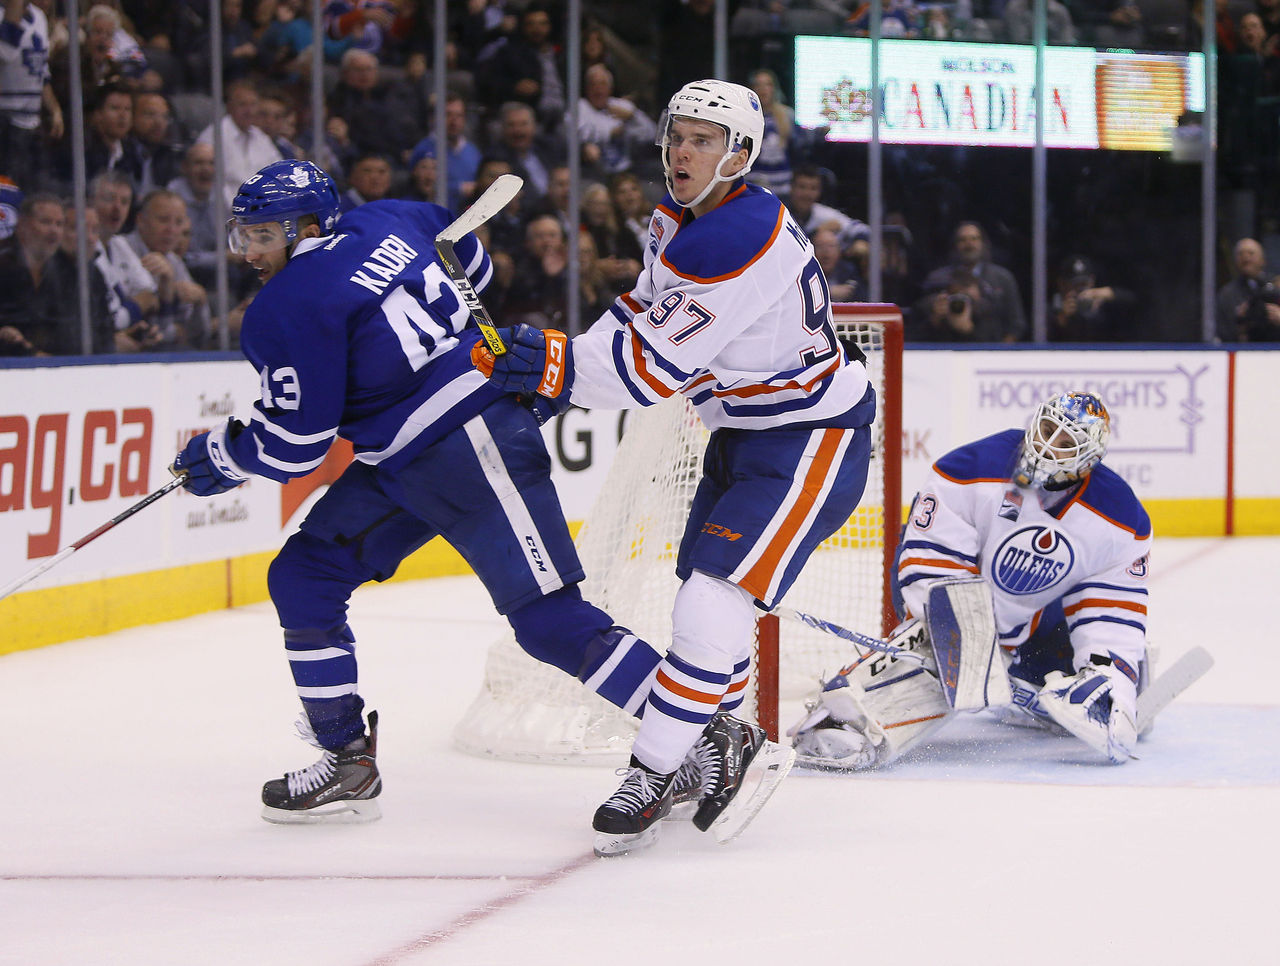 edmonton oilers doing well under todd mclellan 2016 images